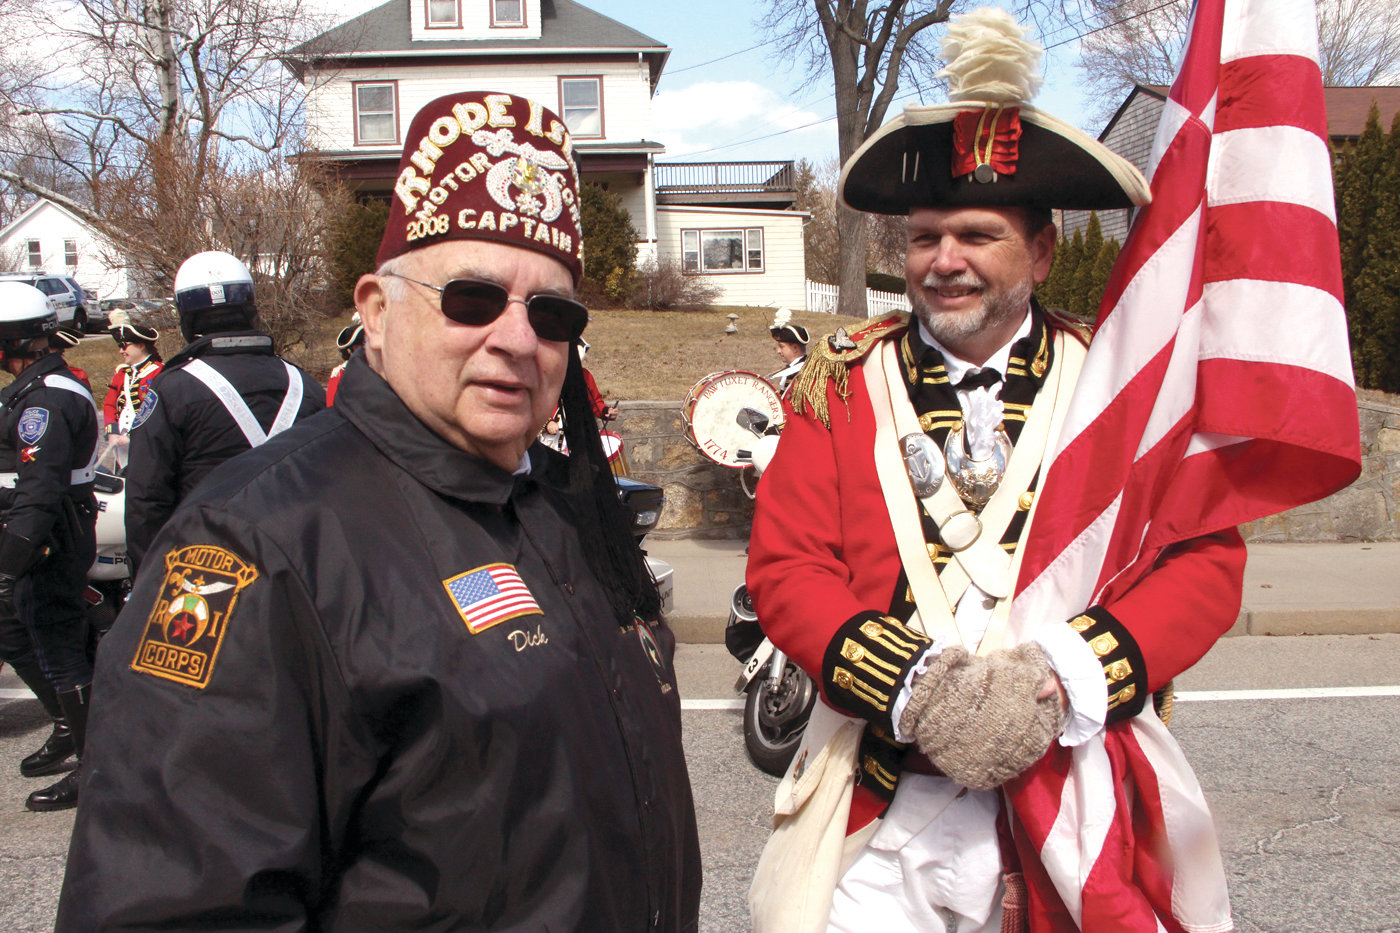 READY AND WAITING: Dick Loring of the Rhode Island Shriners and Ron Barnes of the Pawtuxet Rangers wait to step off at Sunday's parade.